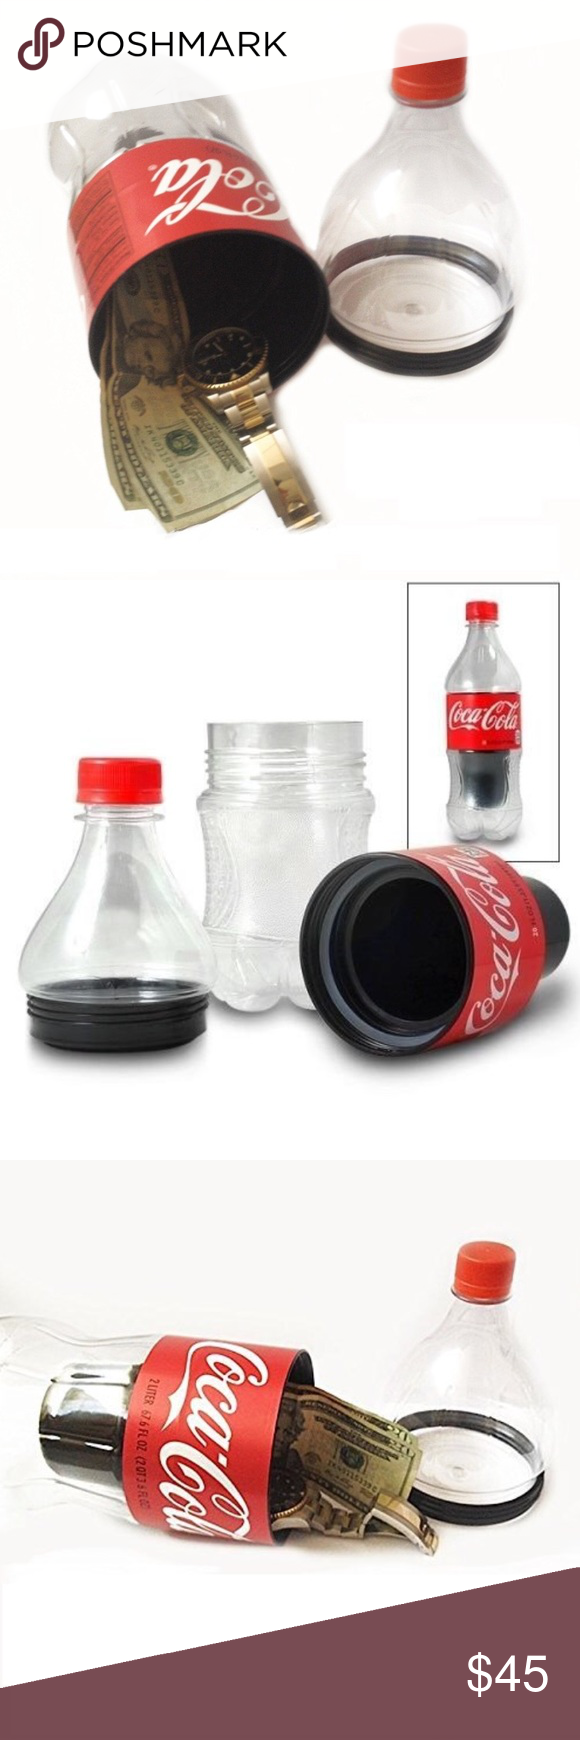 Secret fake coke bottle Secret compartment for storing